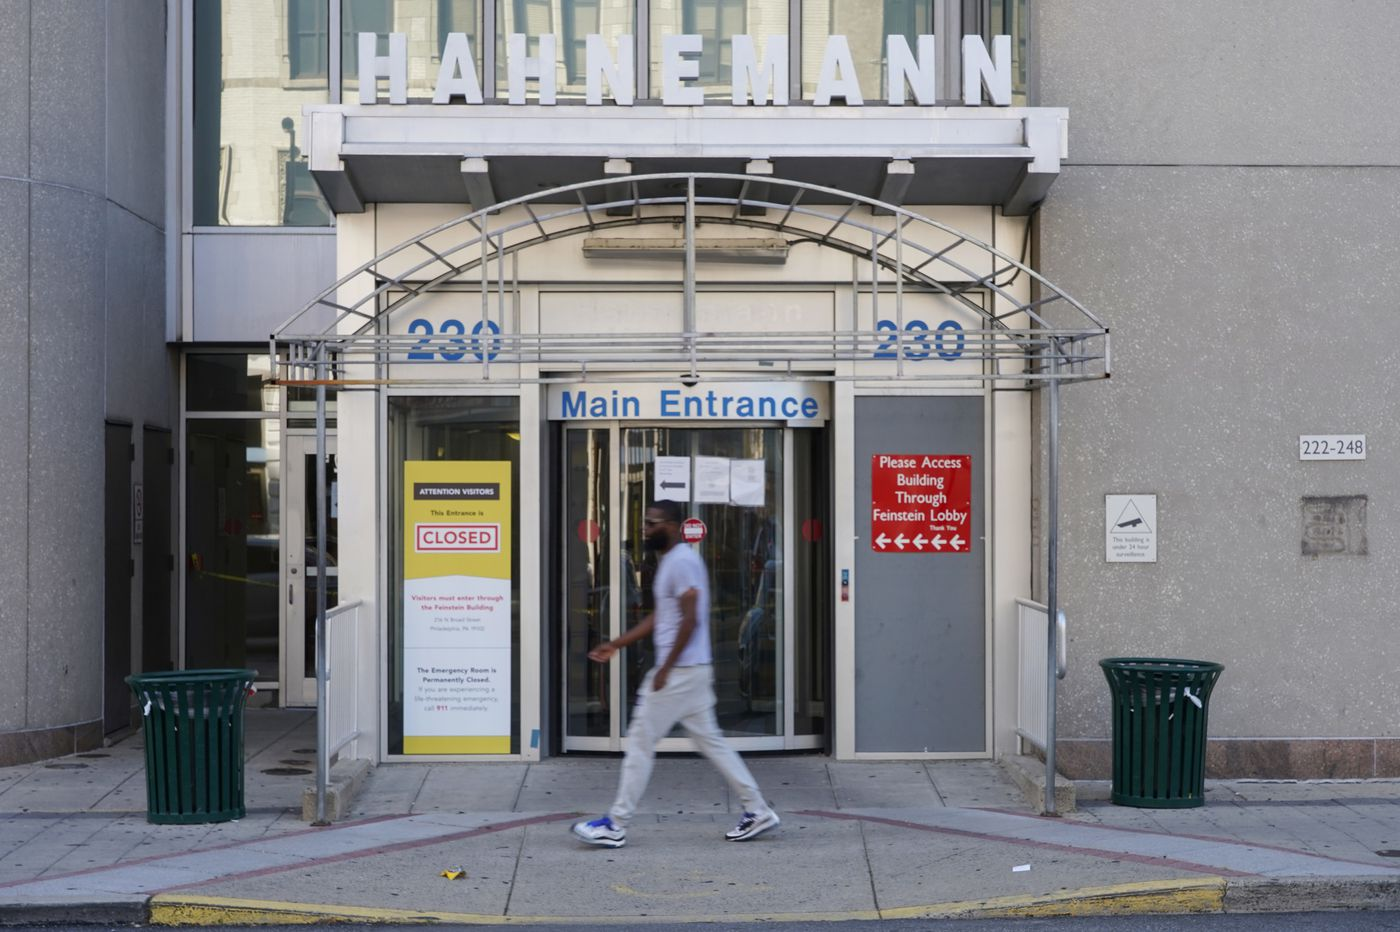 Hahnemann closure puts $51 million in Medicaid funds in play. Will the money stay in Philly?